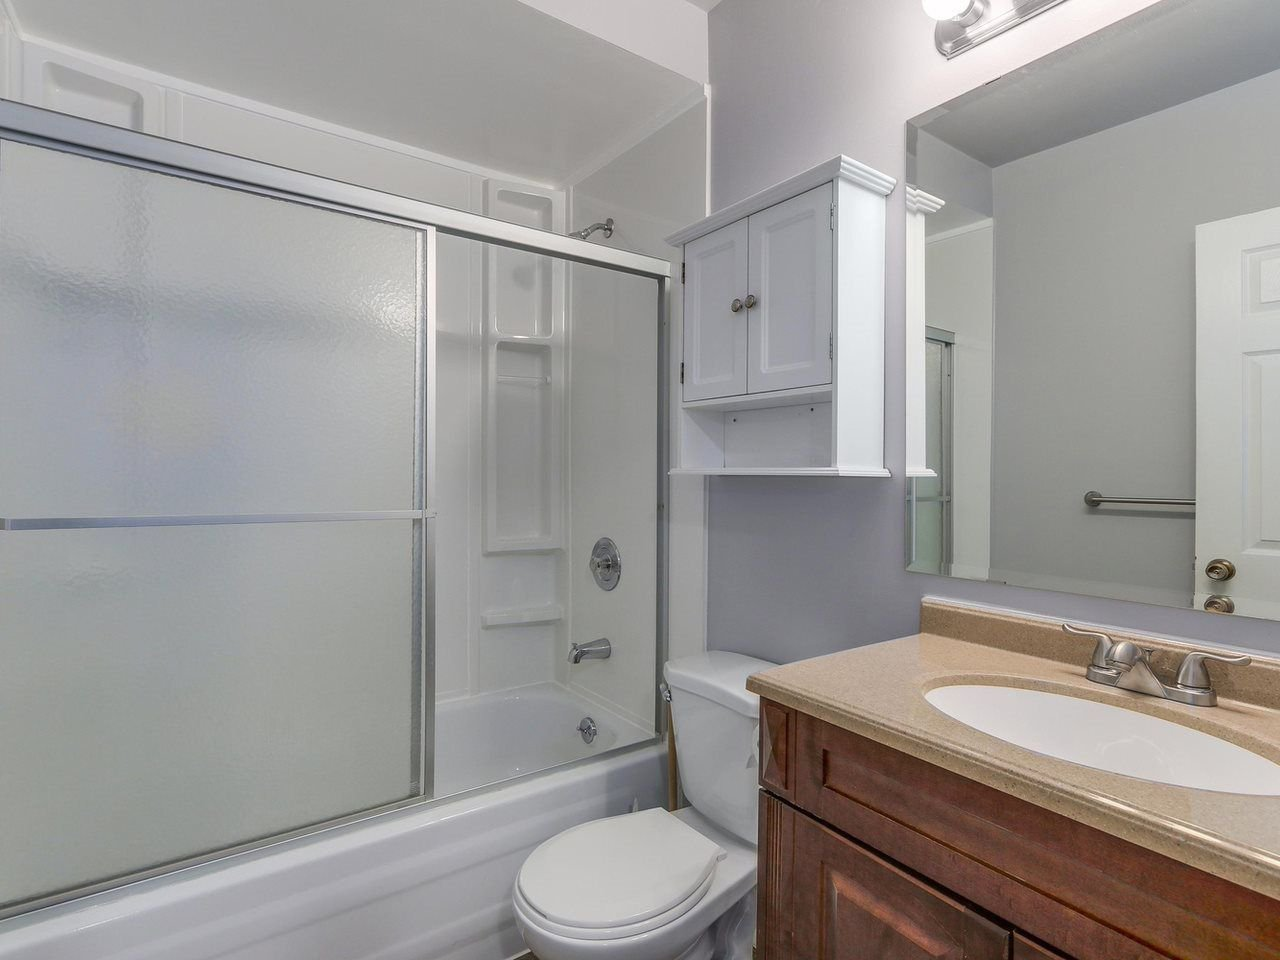 """Photo 11: Photos: 1673 GREENMOUNT Avenue in Port Coquitlam: Oxford Heights 1/2 Duplex for sale in """"OXFORD HEIGHTS"""" : MLS®# R2221936"""